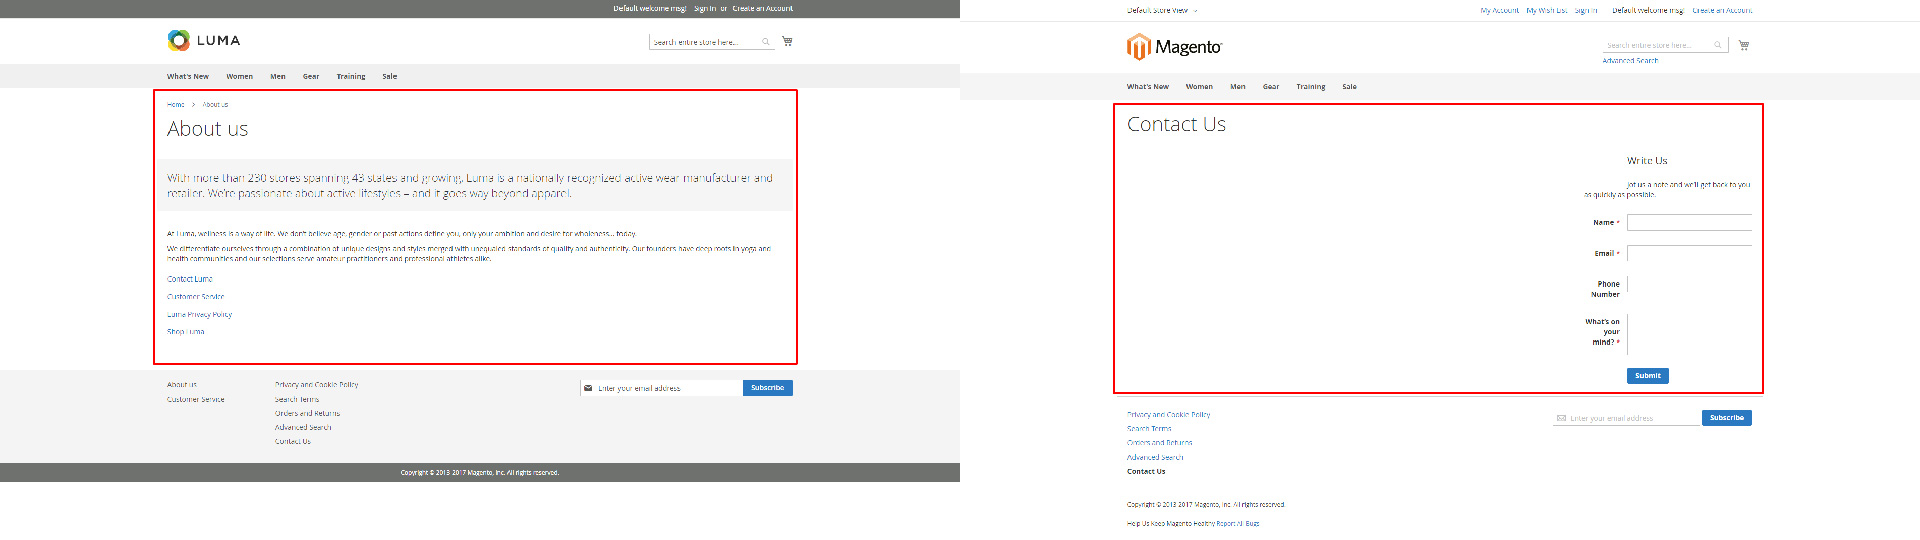 Magento 2 theme comparison Luma and Blank - About page